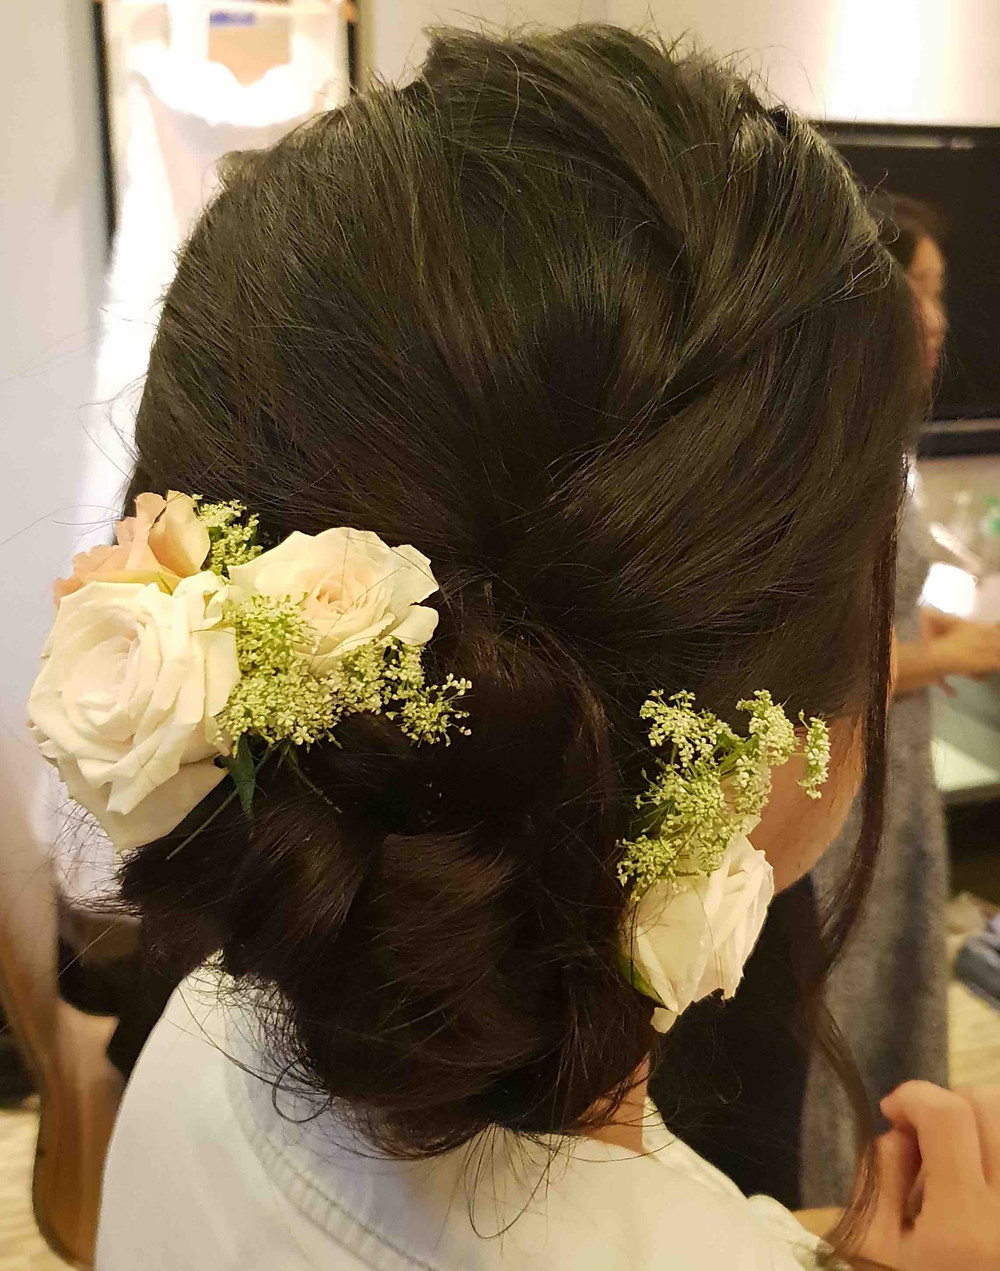 Jolene Actual Day Wedding Floral Hairstyle By Makeup Doyennes